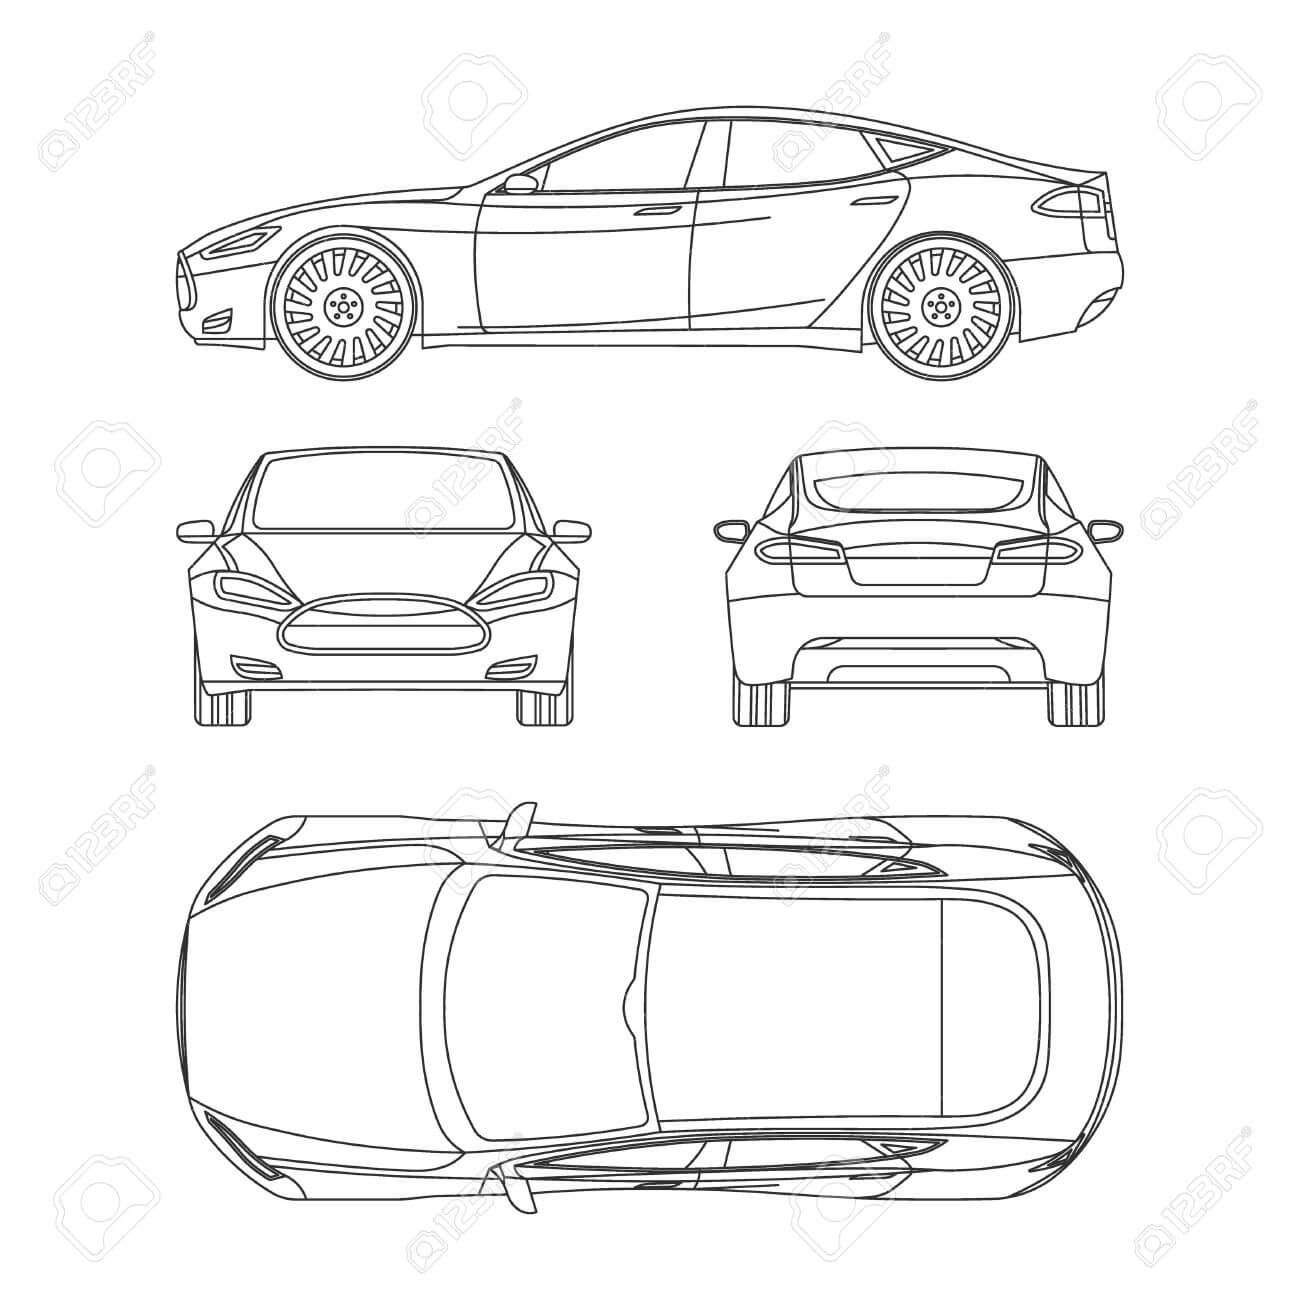 Car Line Draw Insurance, Rent Damage, Condition Report Form Blueprint For Car Damage Report Template